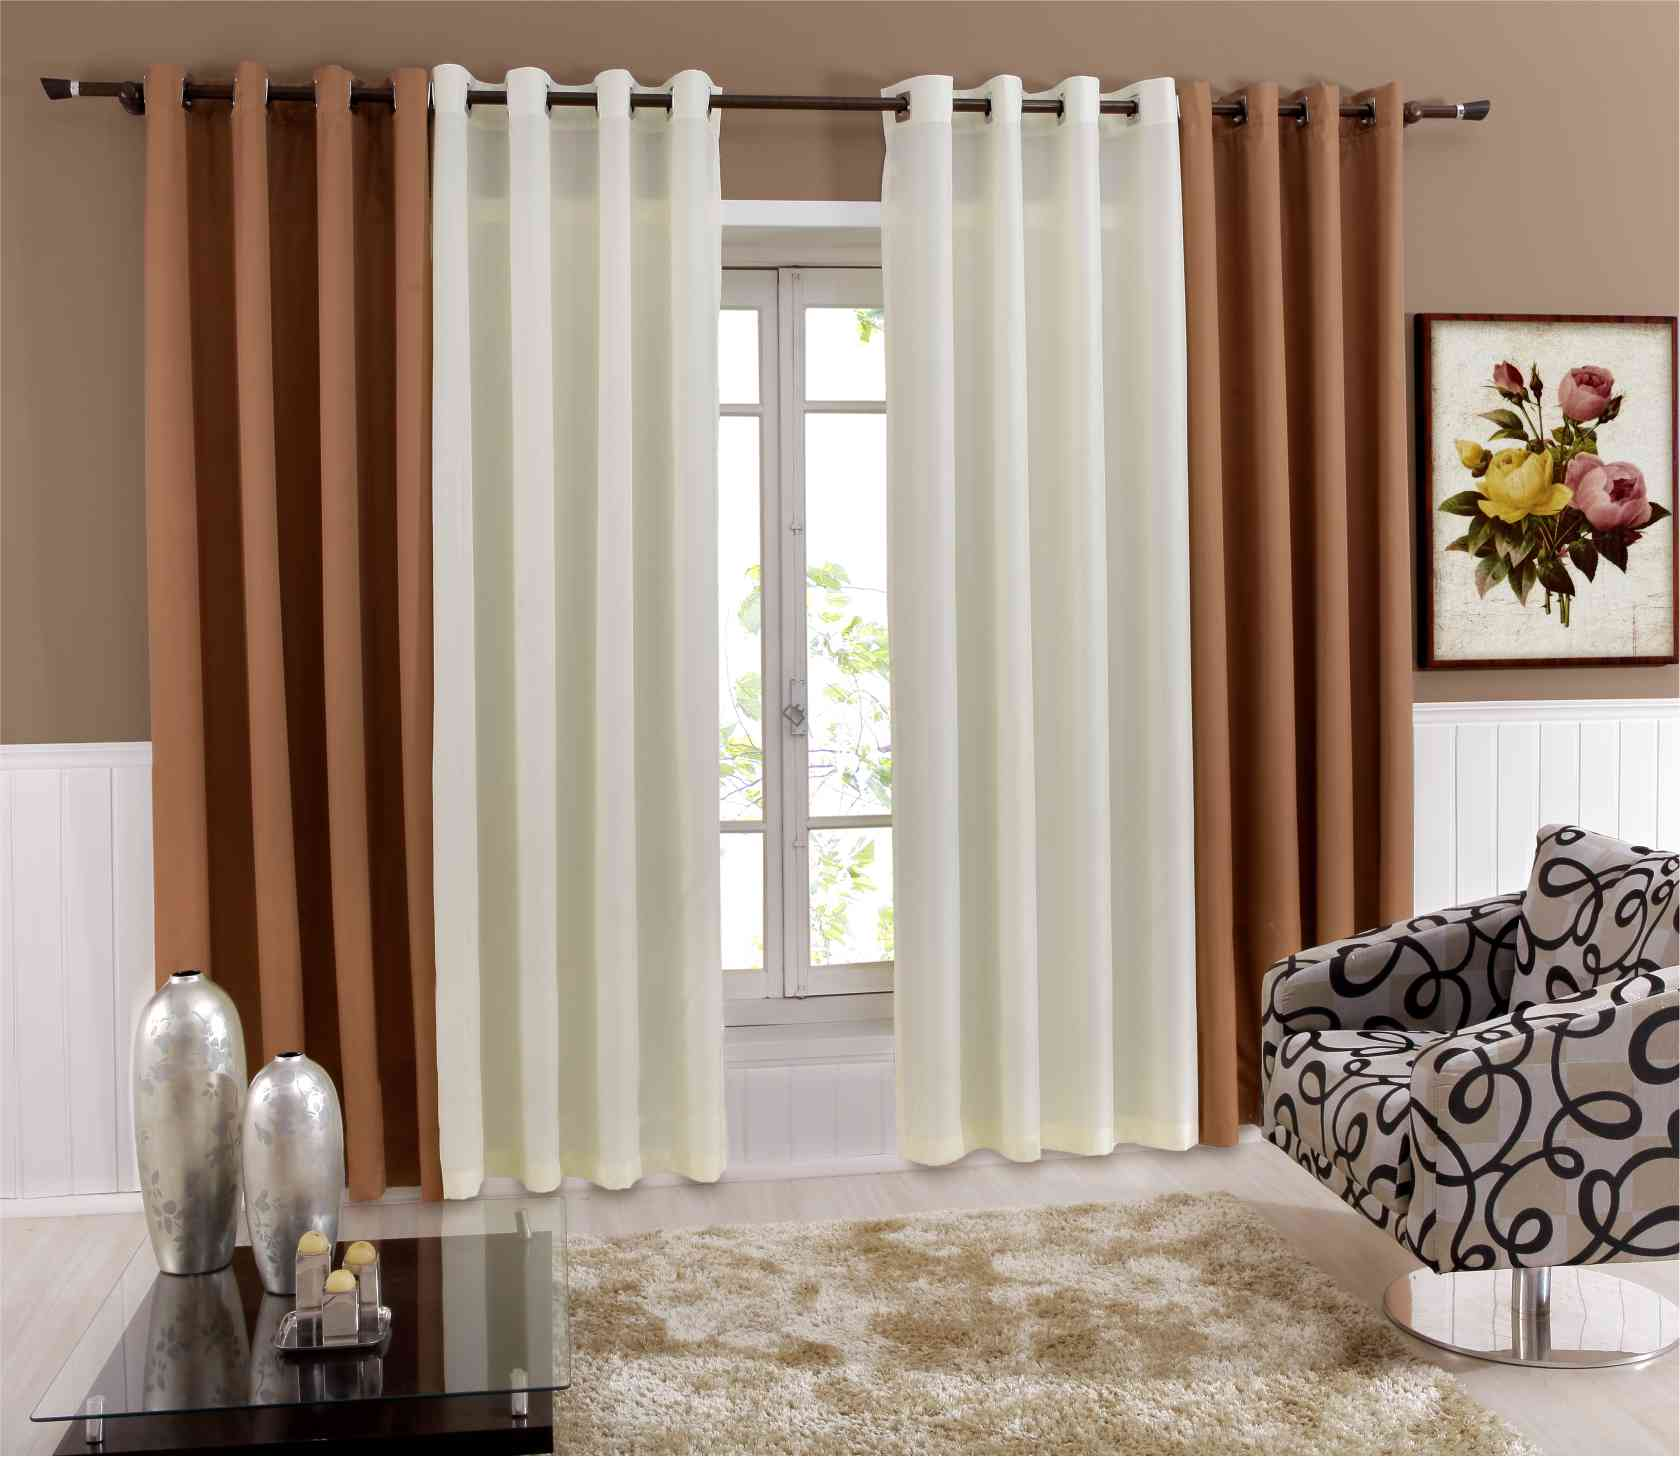 Cortinas y estores alutherm for Cortinas para casa